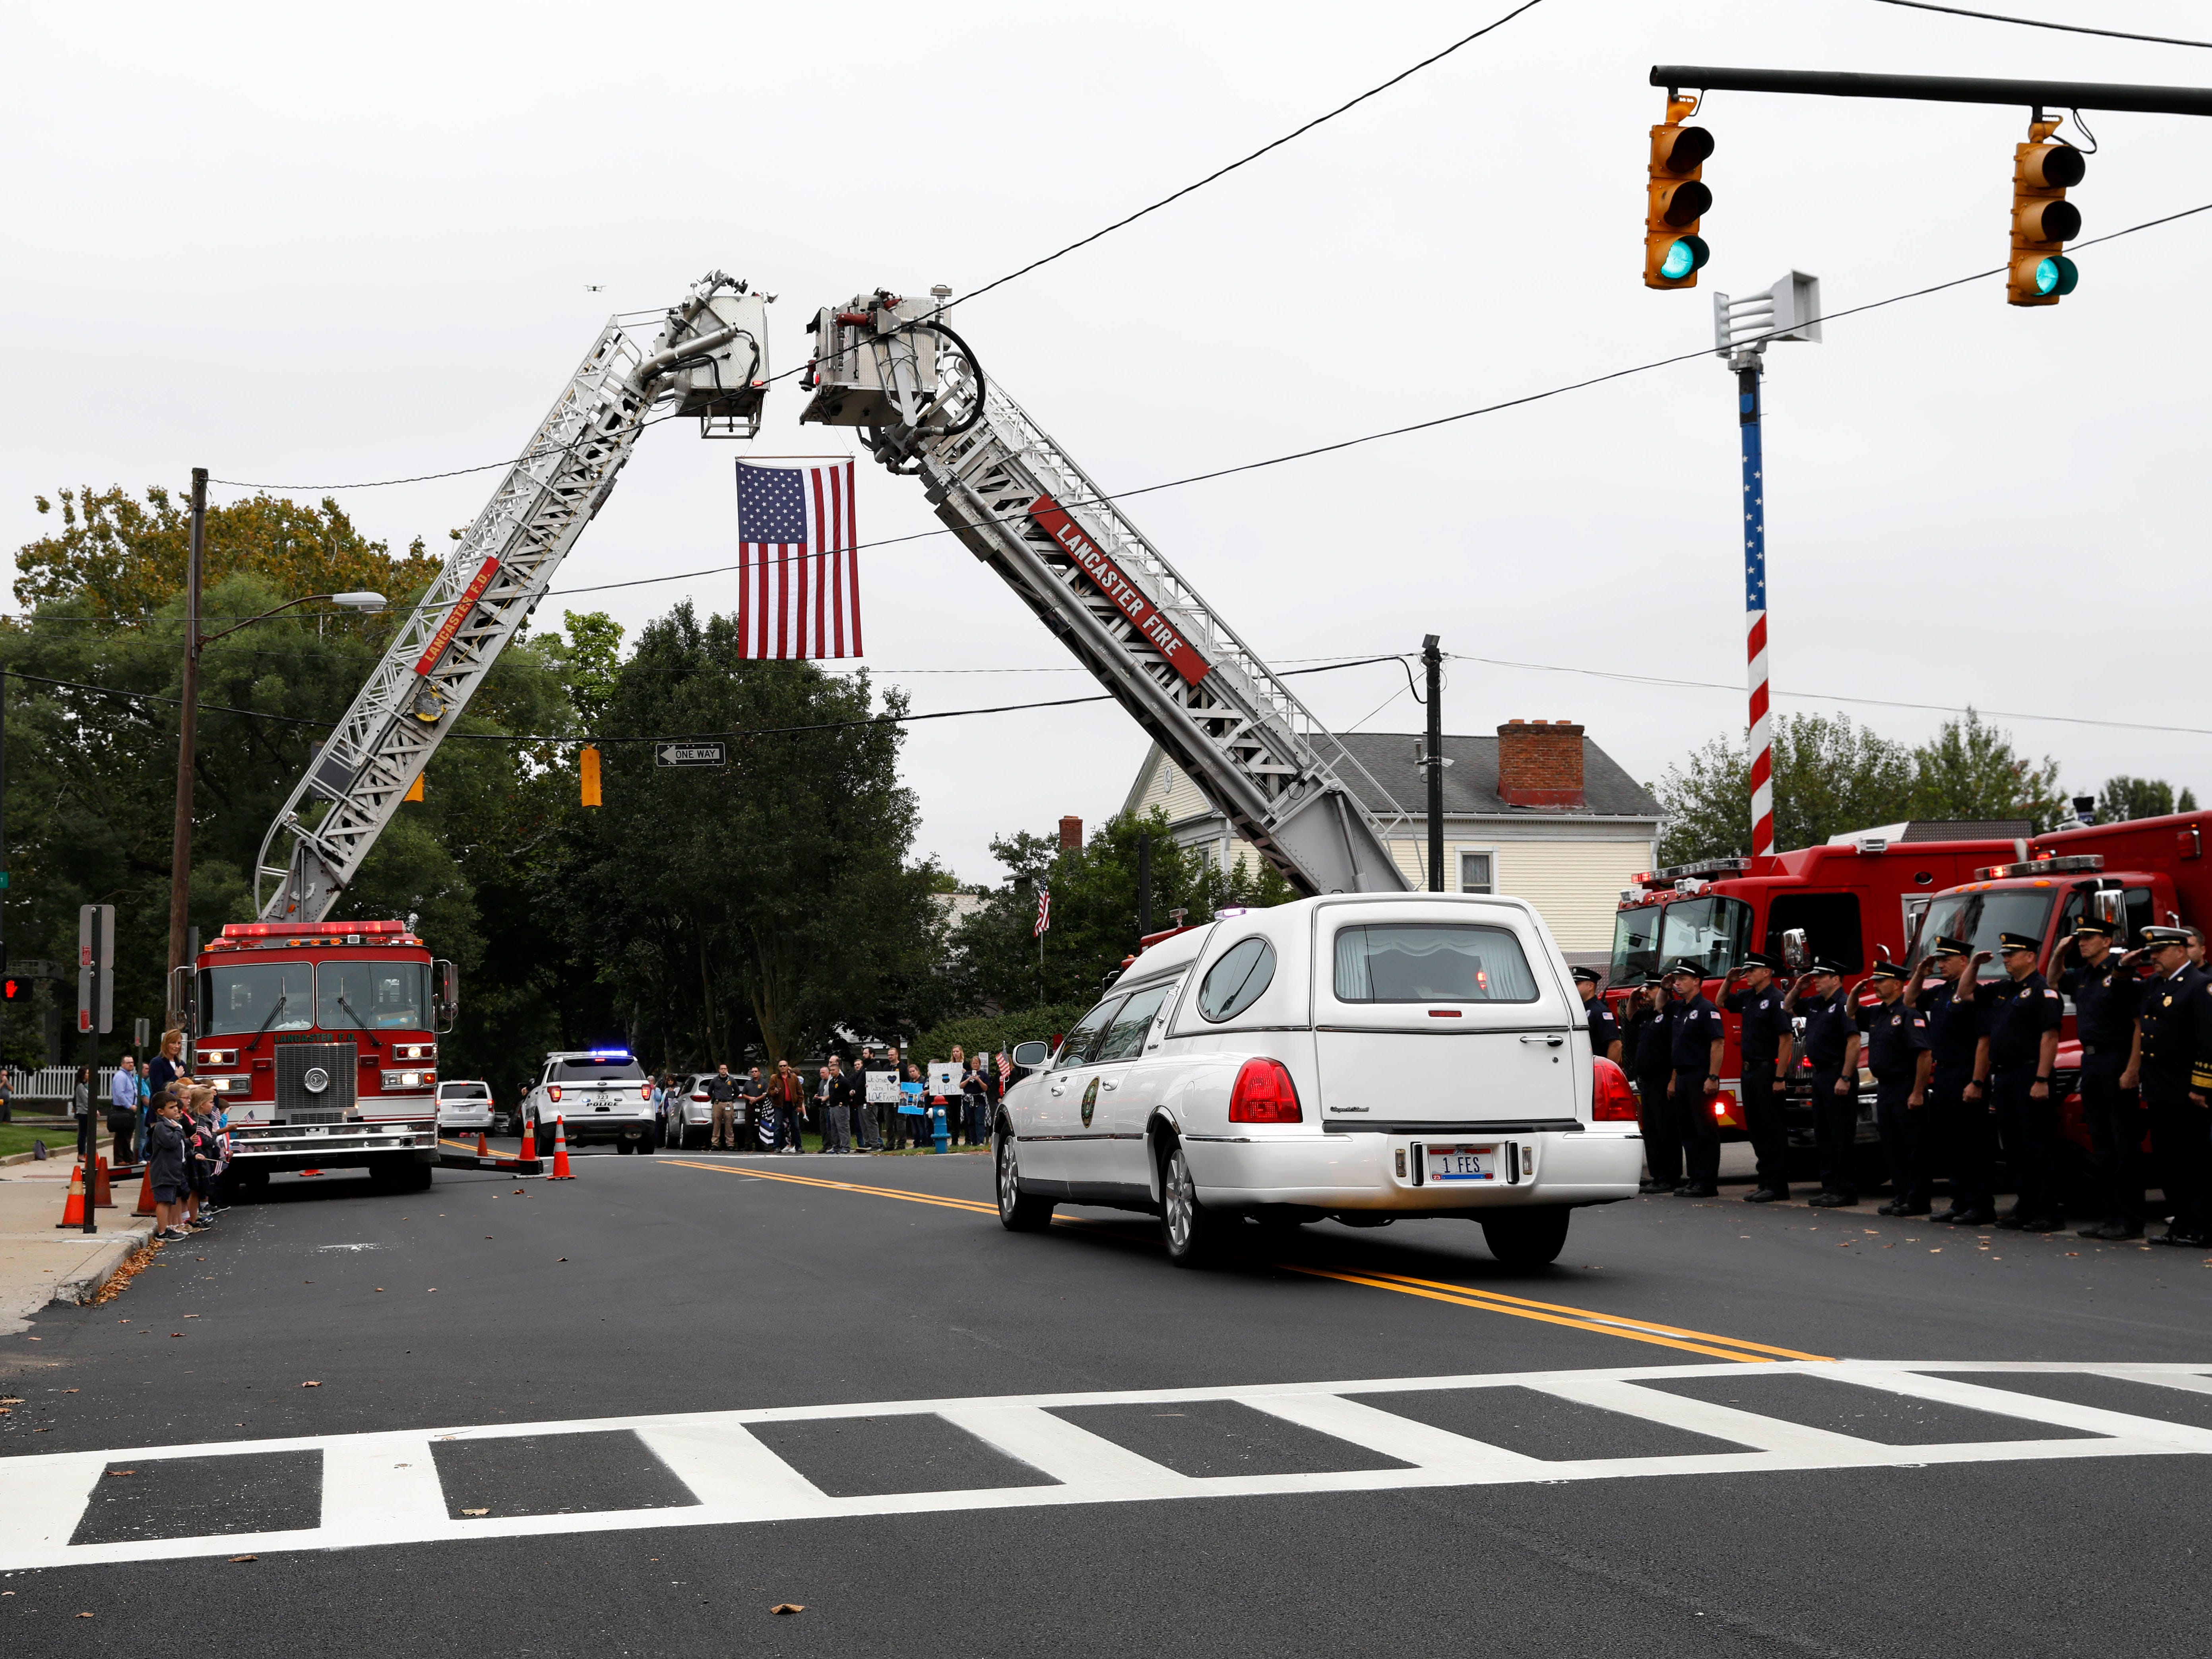 A hearse carrying the casket of Lancaster Police Lt. Brian Lowe passes under an American flag hanging between two Lancaster Fire Department trucks Friday, Oct. 5, 2018, on Chestnut Street in Lancaster. More than 100 cars about half of them police and emergency services vehicles from throughout Ohio took part in the procession from Fairfield Christian Church on North Columbus Street to Maple Grove Cemetery on U.S. 22 just east of the city. Lowe died unexpectedly September 29 while off duty, he was 46. He leaves behind a wife and two children.